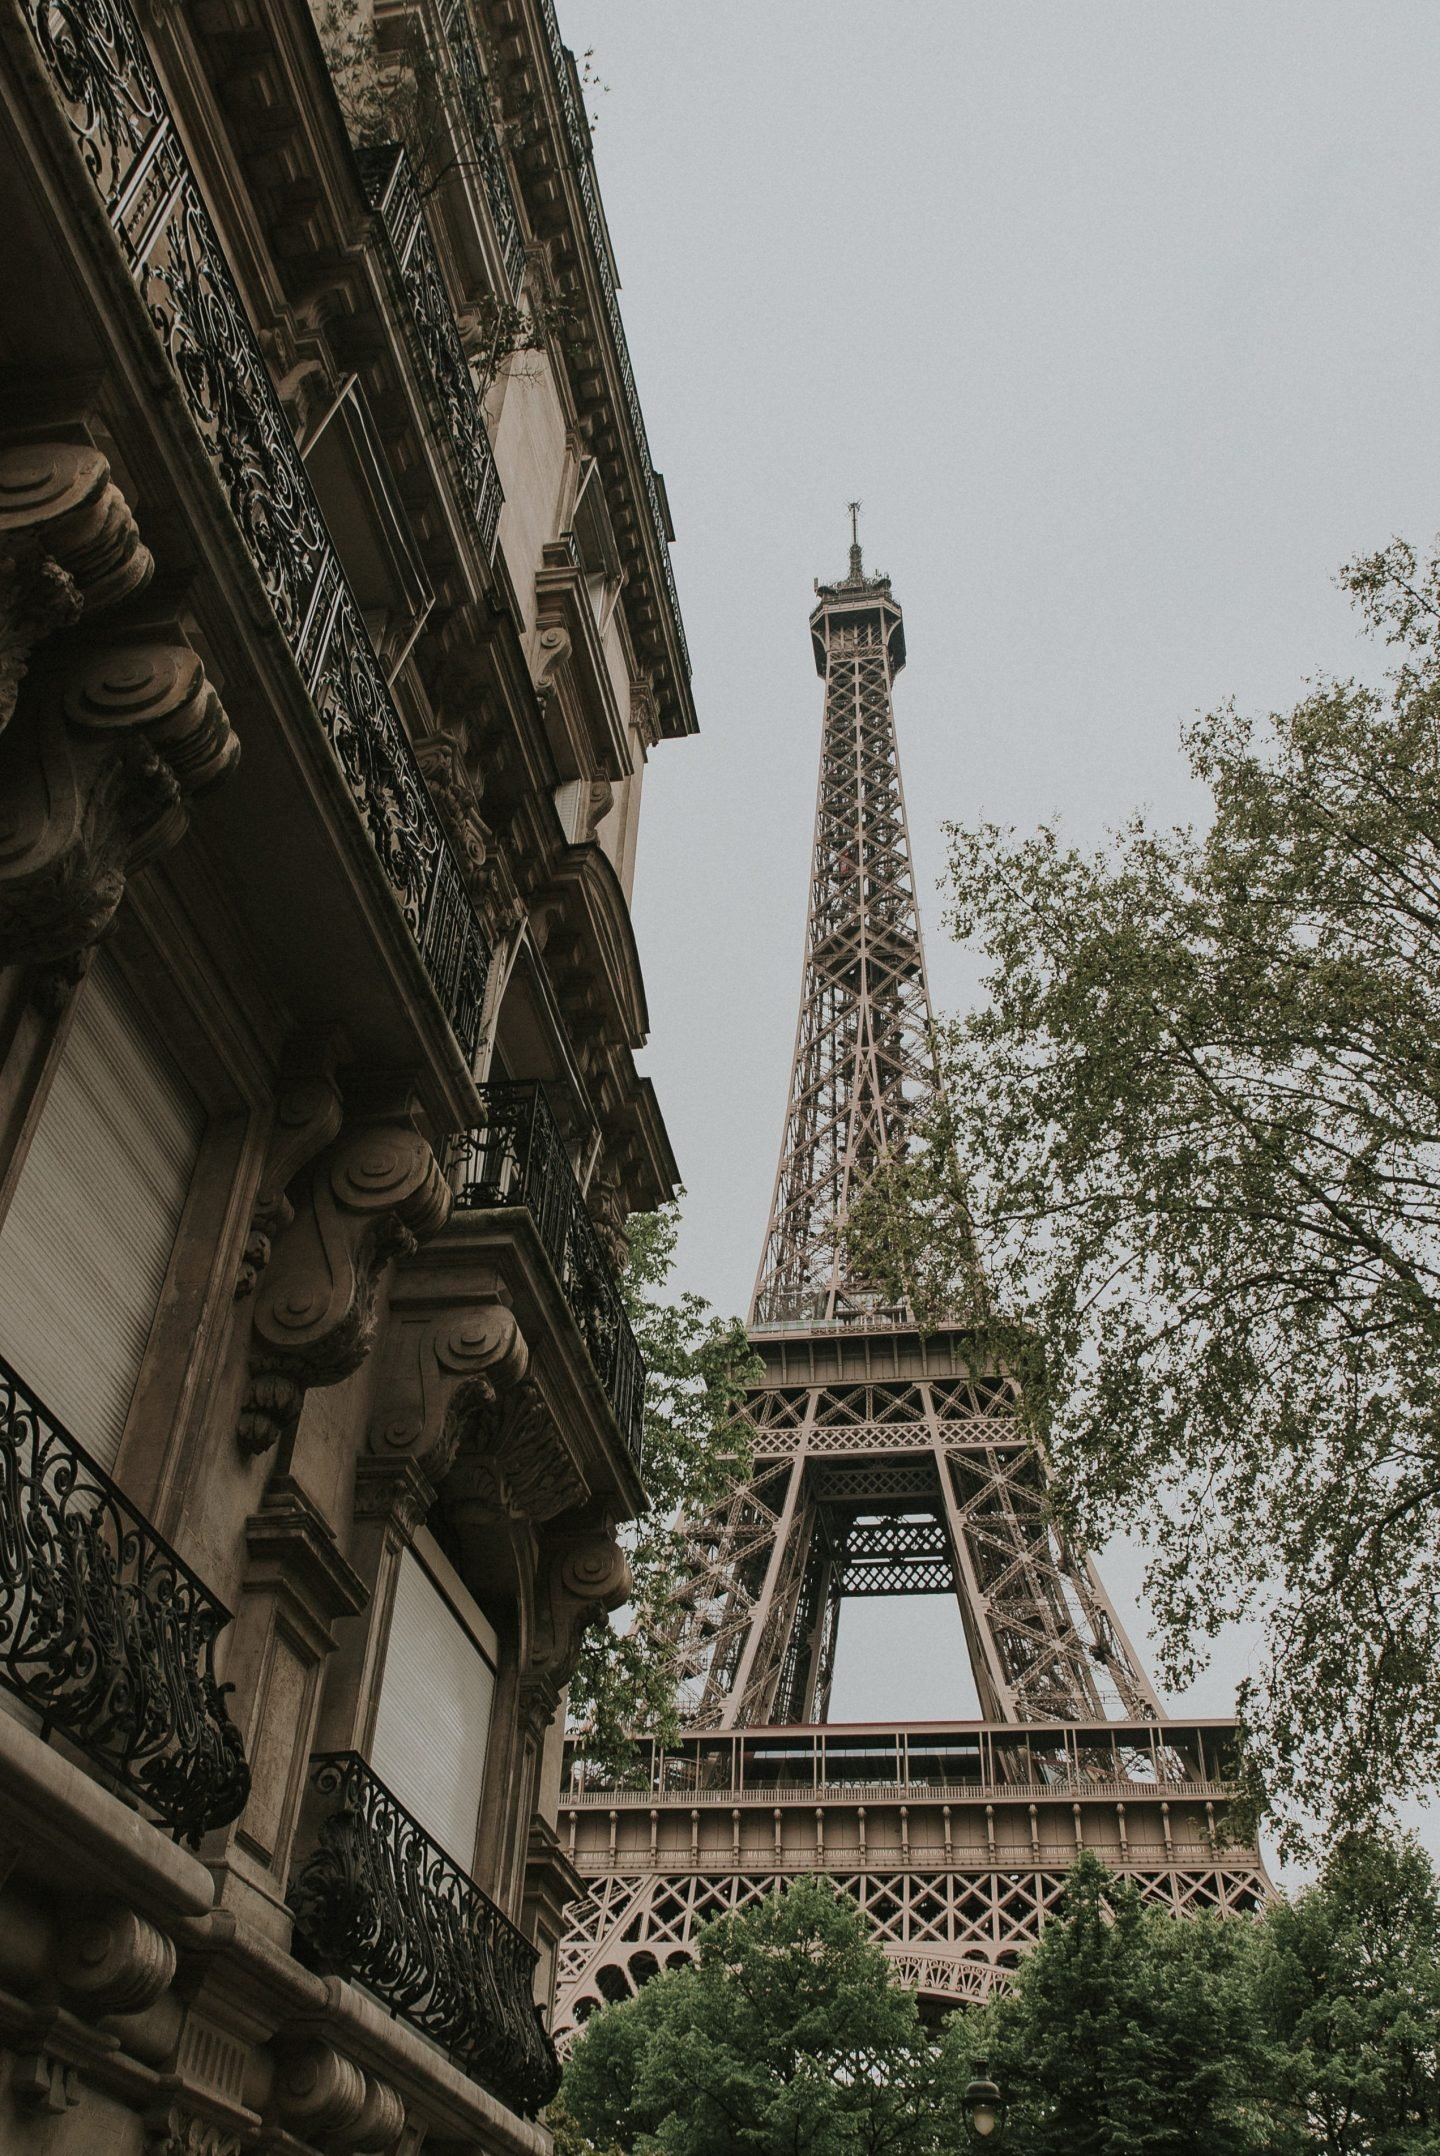 Paris 1 day Travel Itinerary. Everything you want to see and do